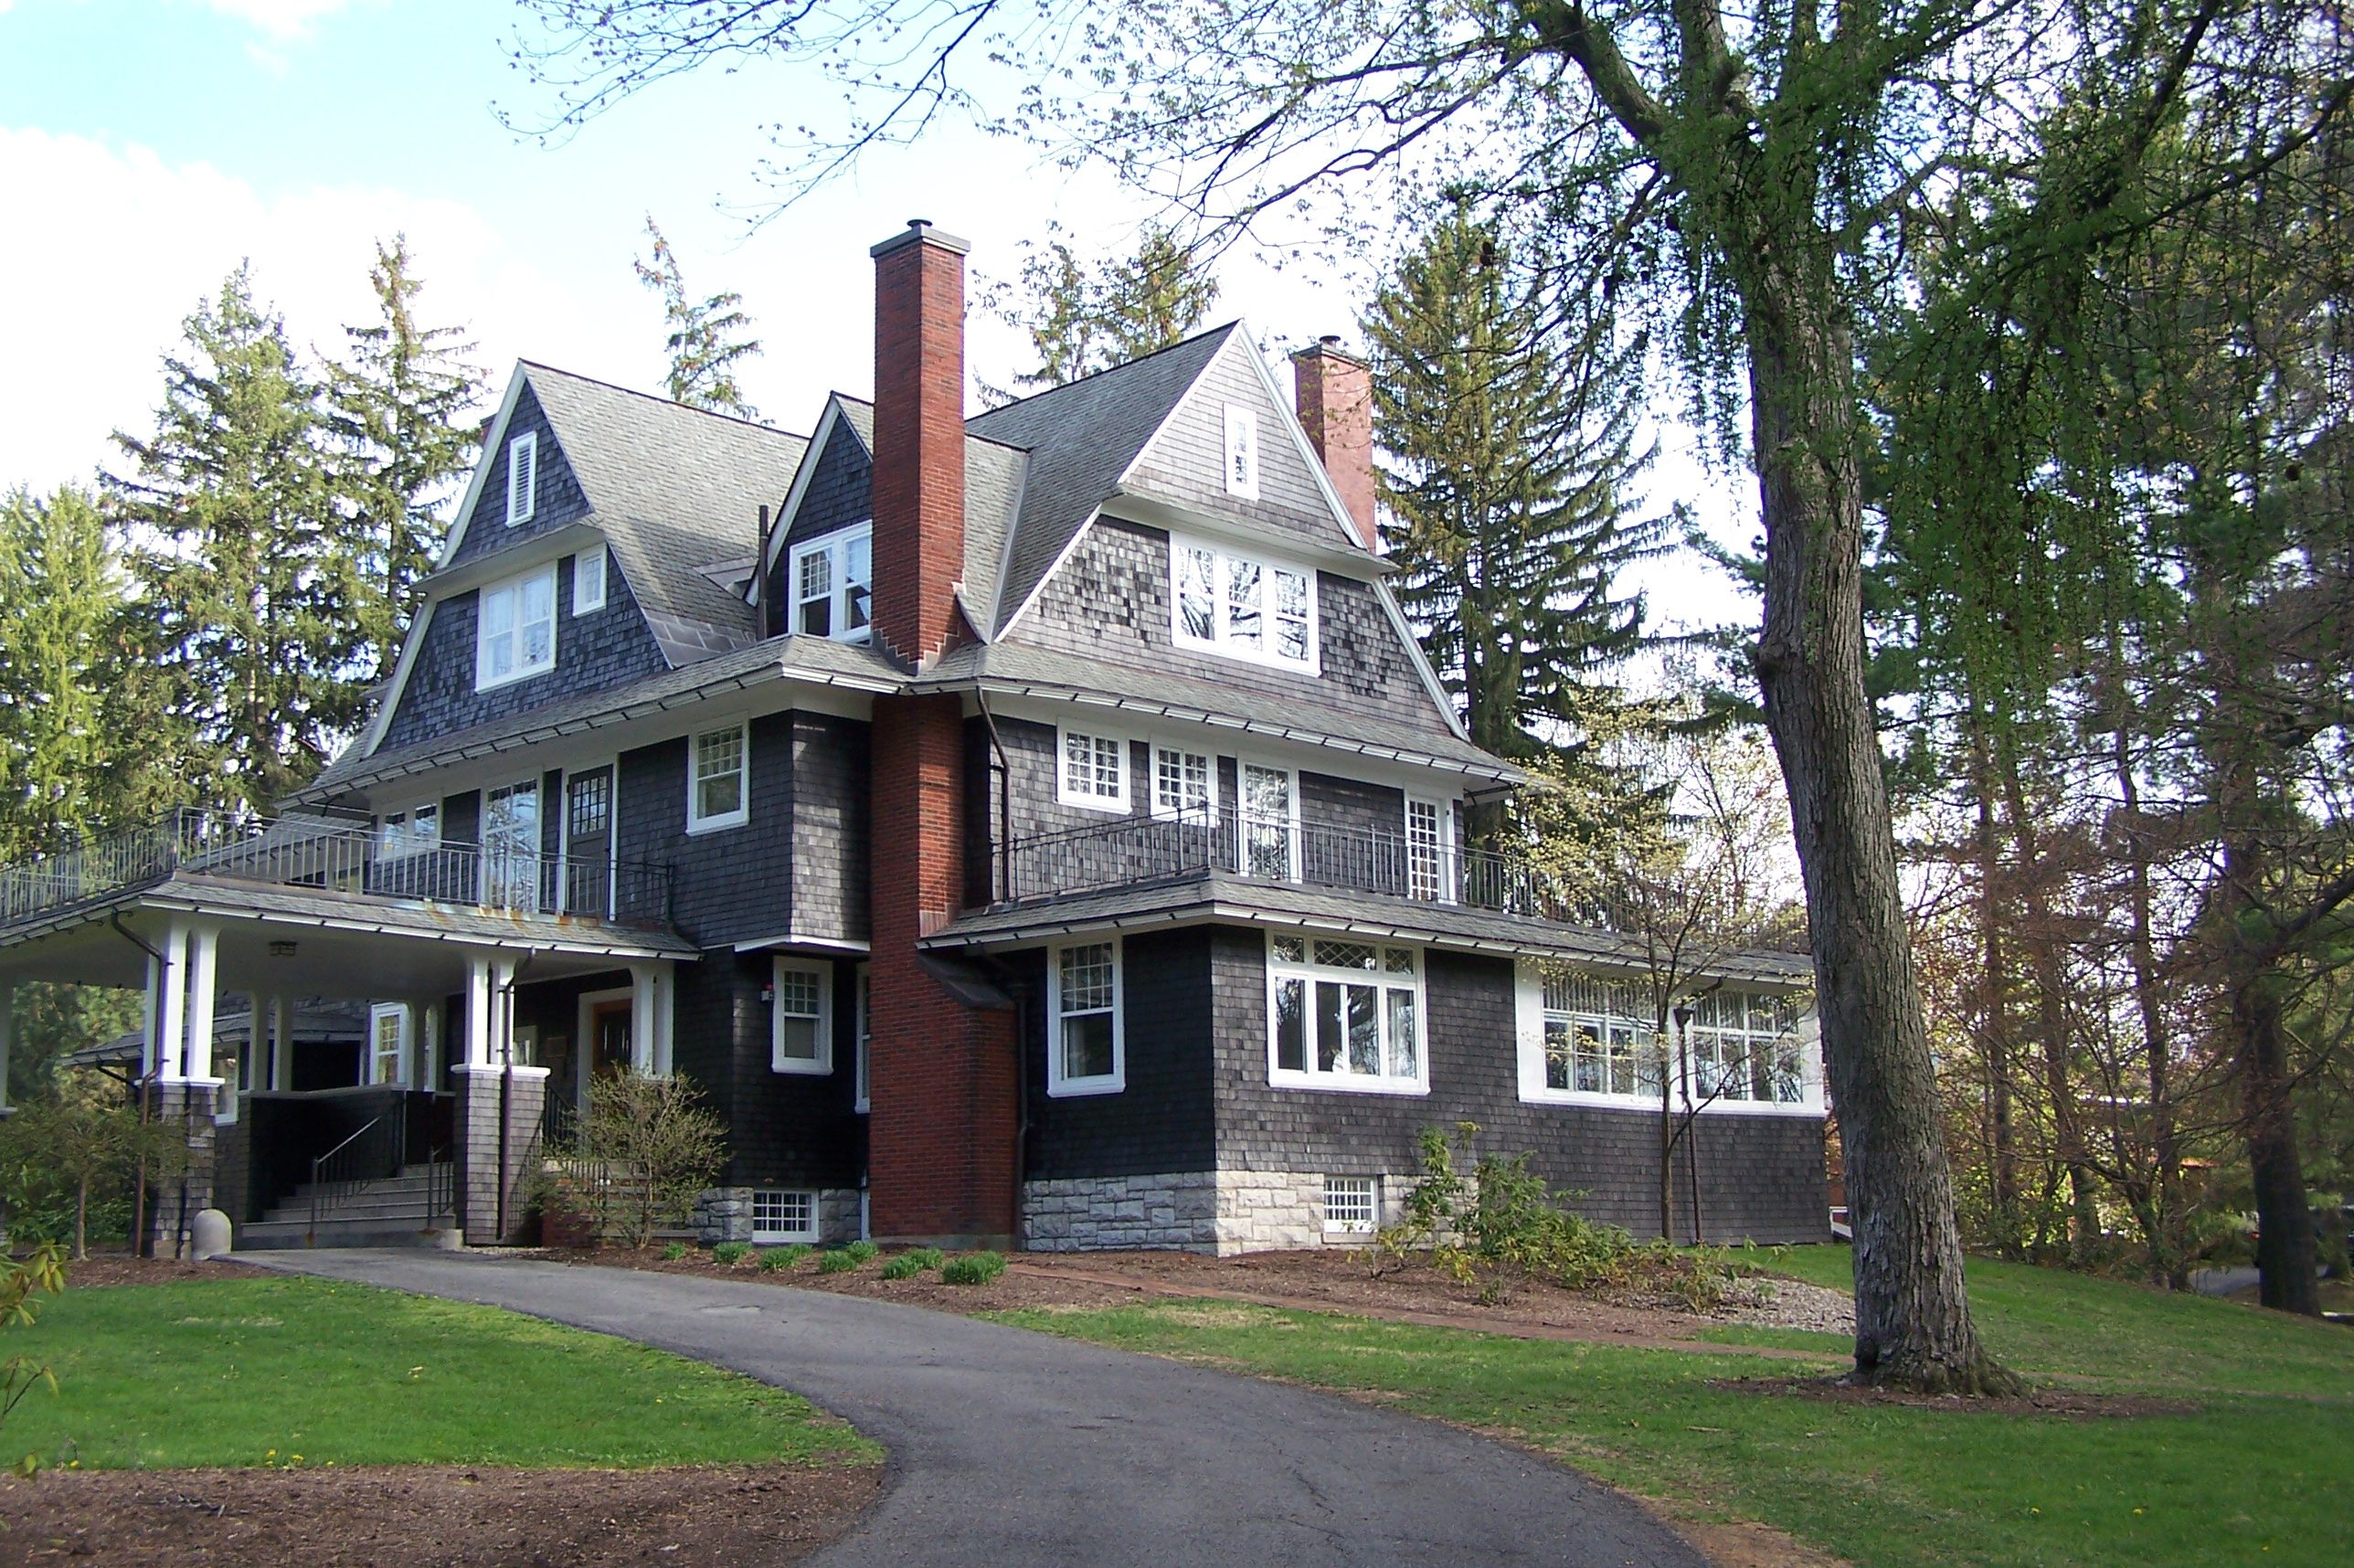 Features Of The Shingle Style Large Gray House With Tall Red Chimneys Multiple Gables Windows Up To A Fourth